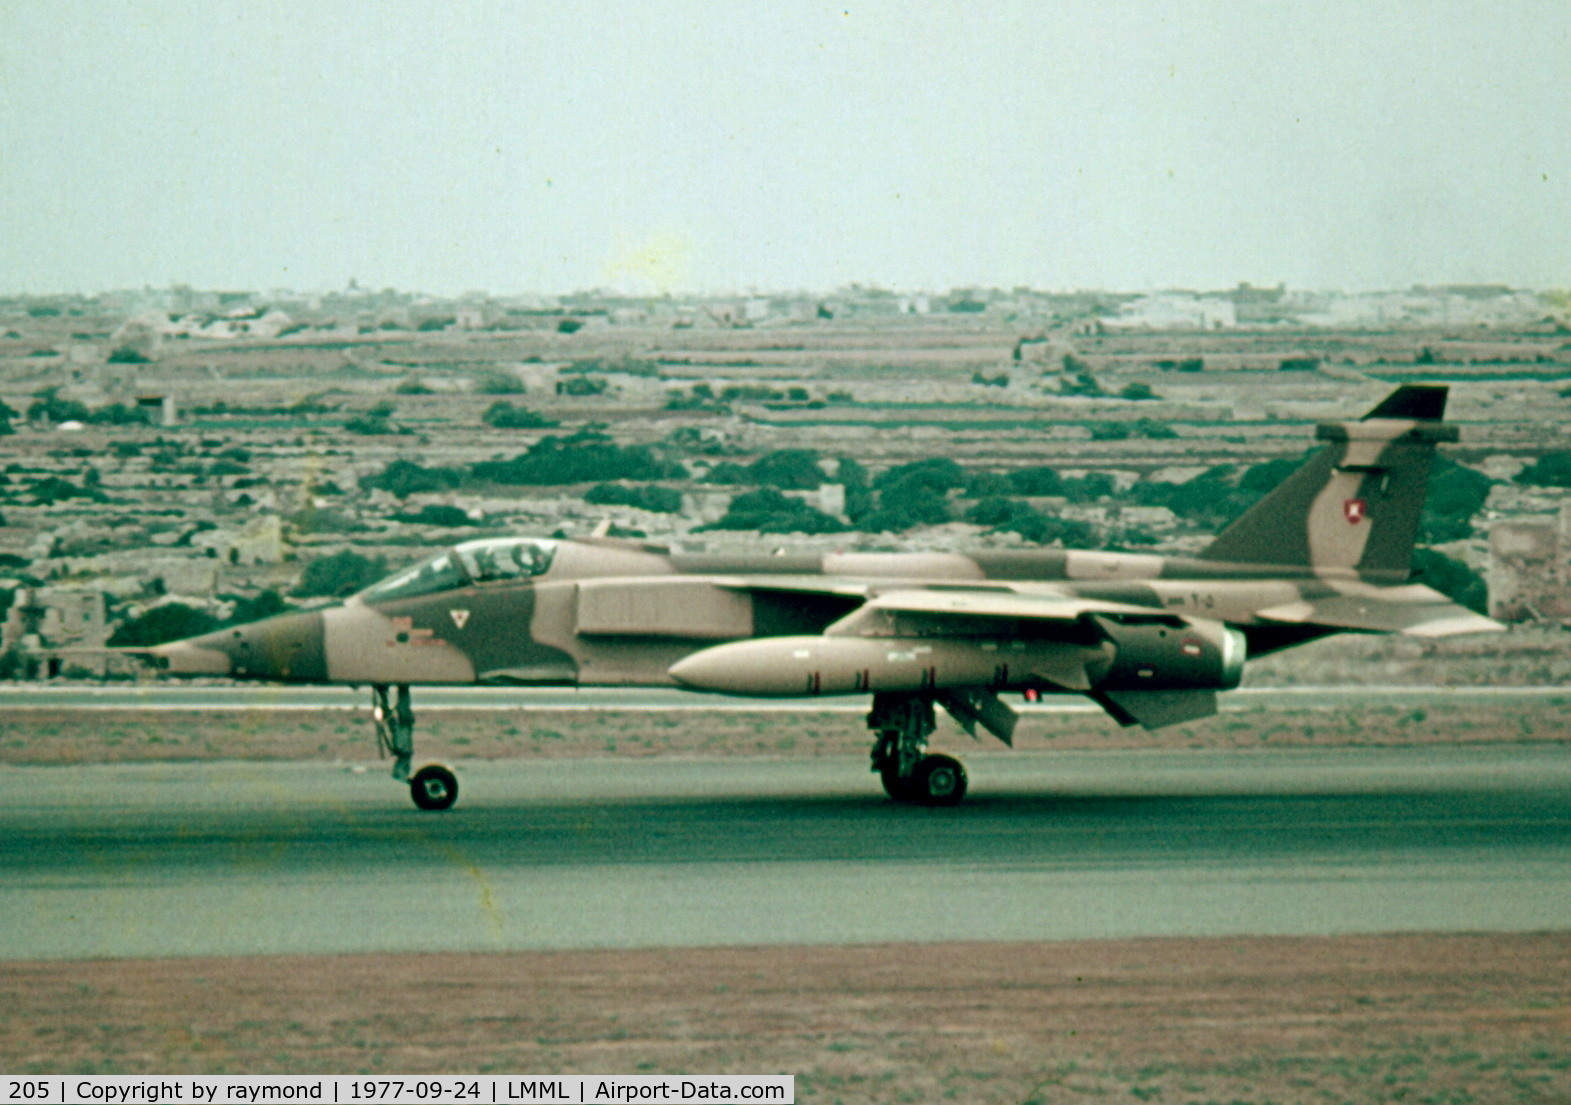 205, 1977 Sepecat Jaguar S C/N 210/S(O)3, Sepecat Jaguar 205 Oman Air Force